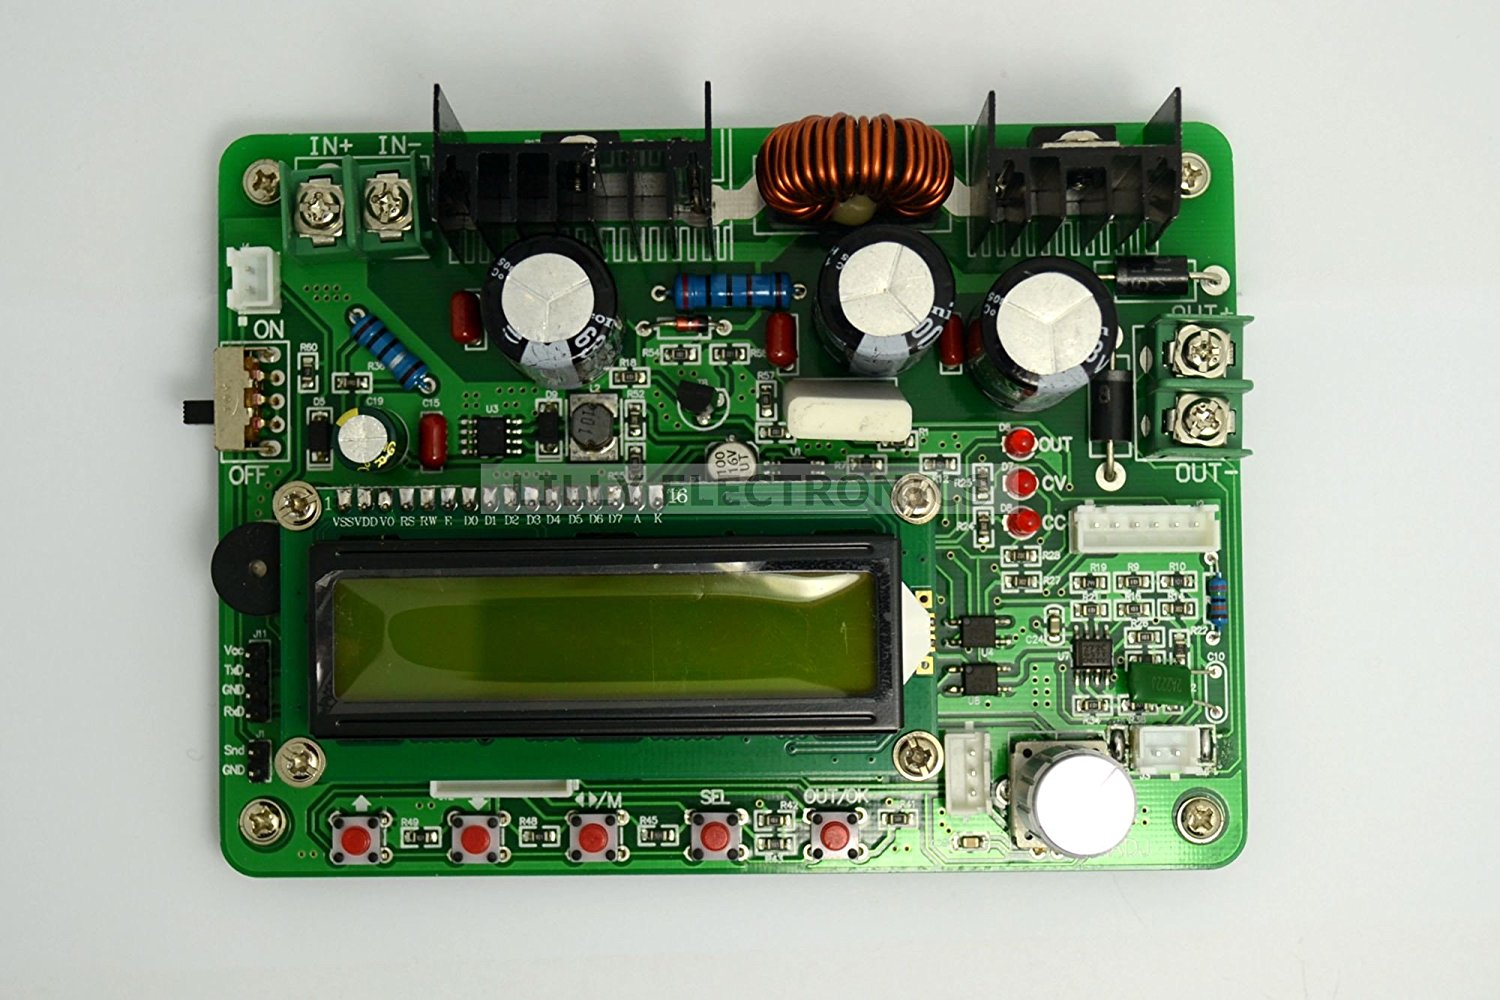 Cheap Programmable Dc Power Supply Circuit Find 5v 3a Regulator Switchingregulatorcircuit Powersupplycircuit Get Quotations Q Baihe Zxy6005s 300w Digital Controlled Regulated Module